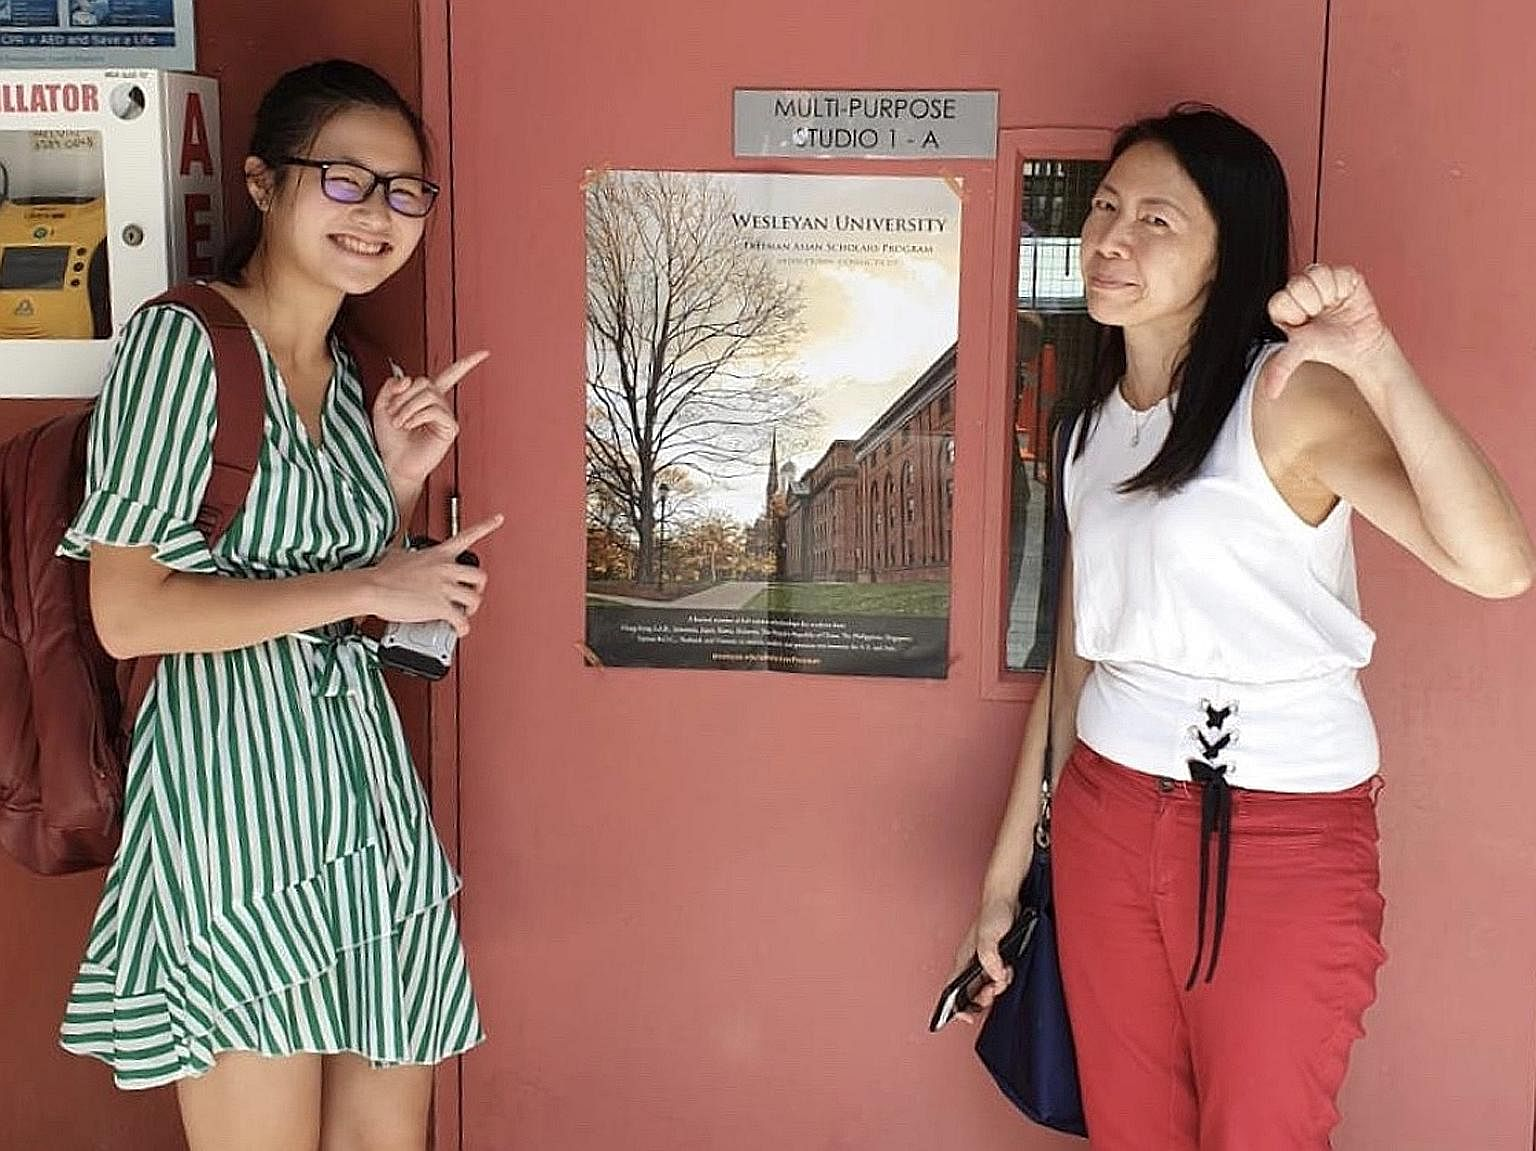 Singaporean Andrea Ho, who has recently been accepted into Georgetown University, with her mother Shirley Tey, who is cautious about the teen going overseas before the pandemic is brought under control.